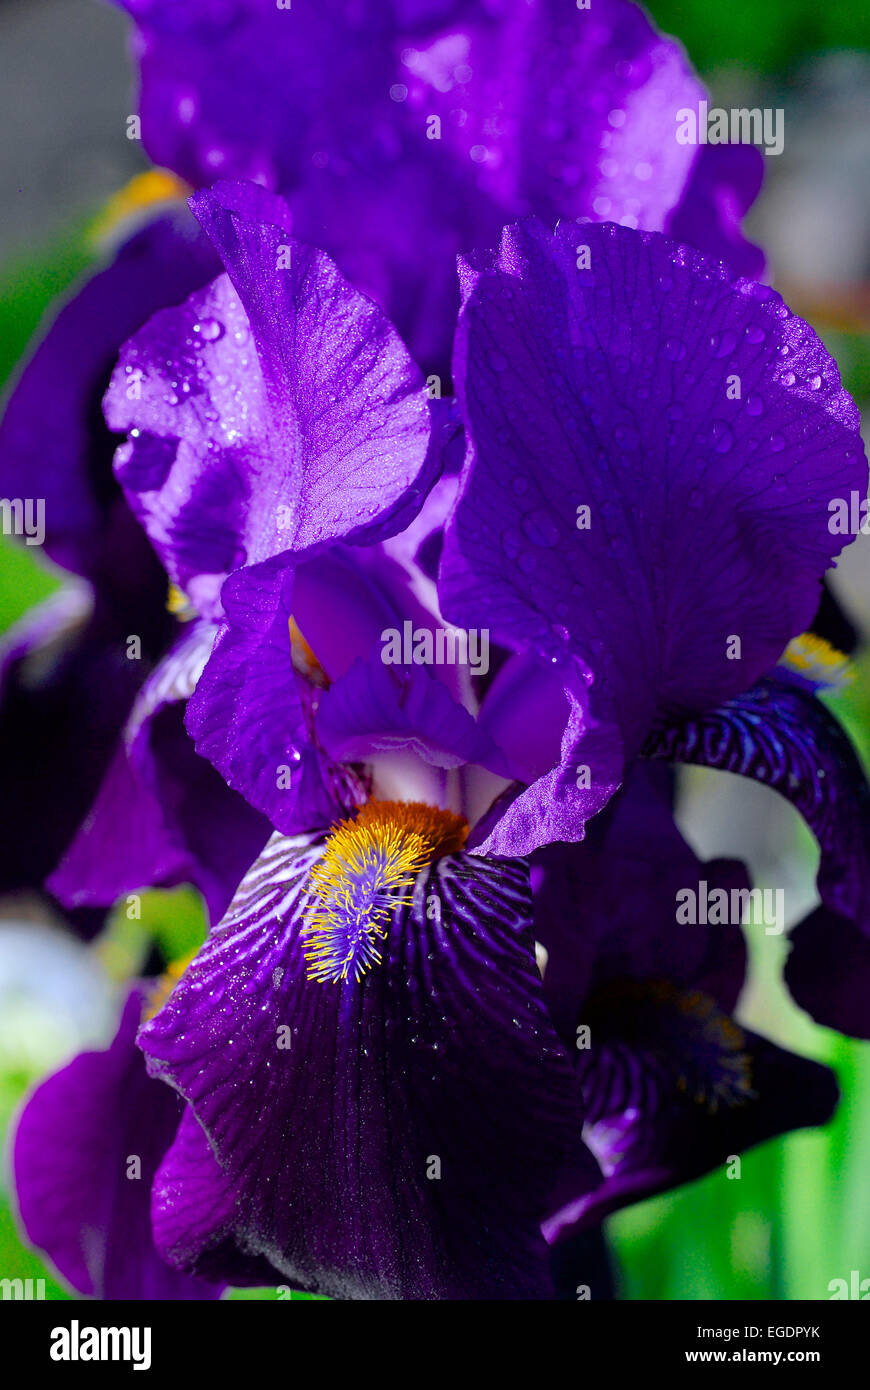 Violett coloured iris blossom with water drops, Germany - Stock Image